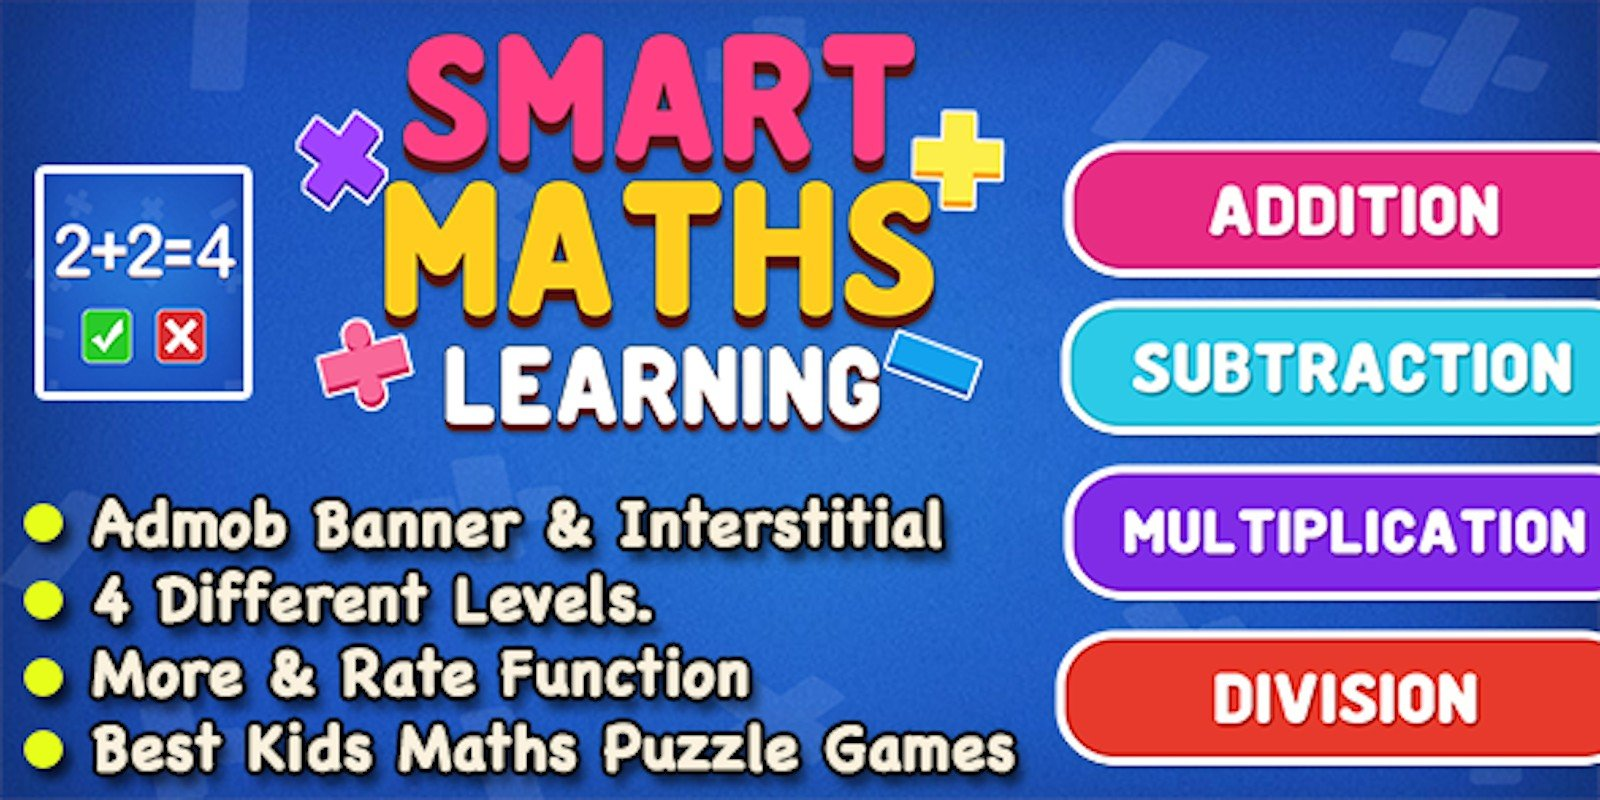 Smart Maths Learning Game - iOS Source Code